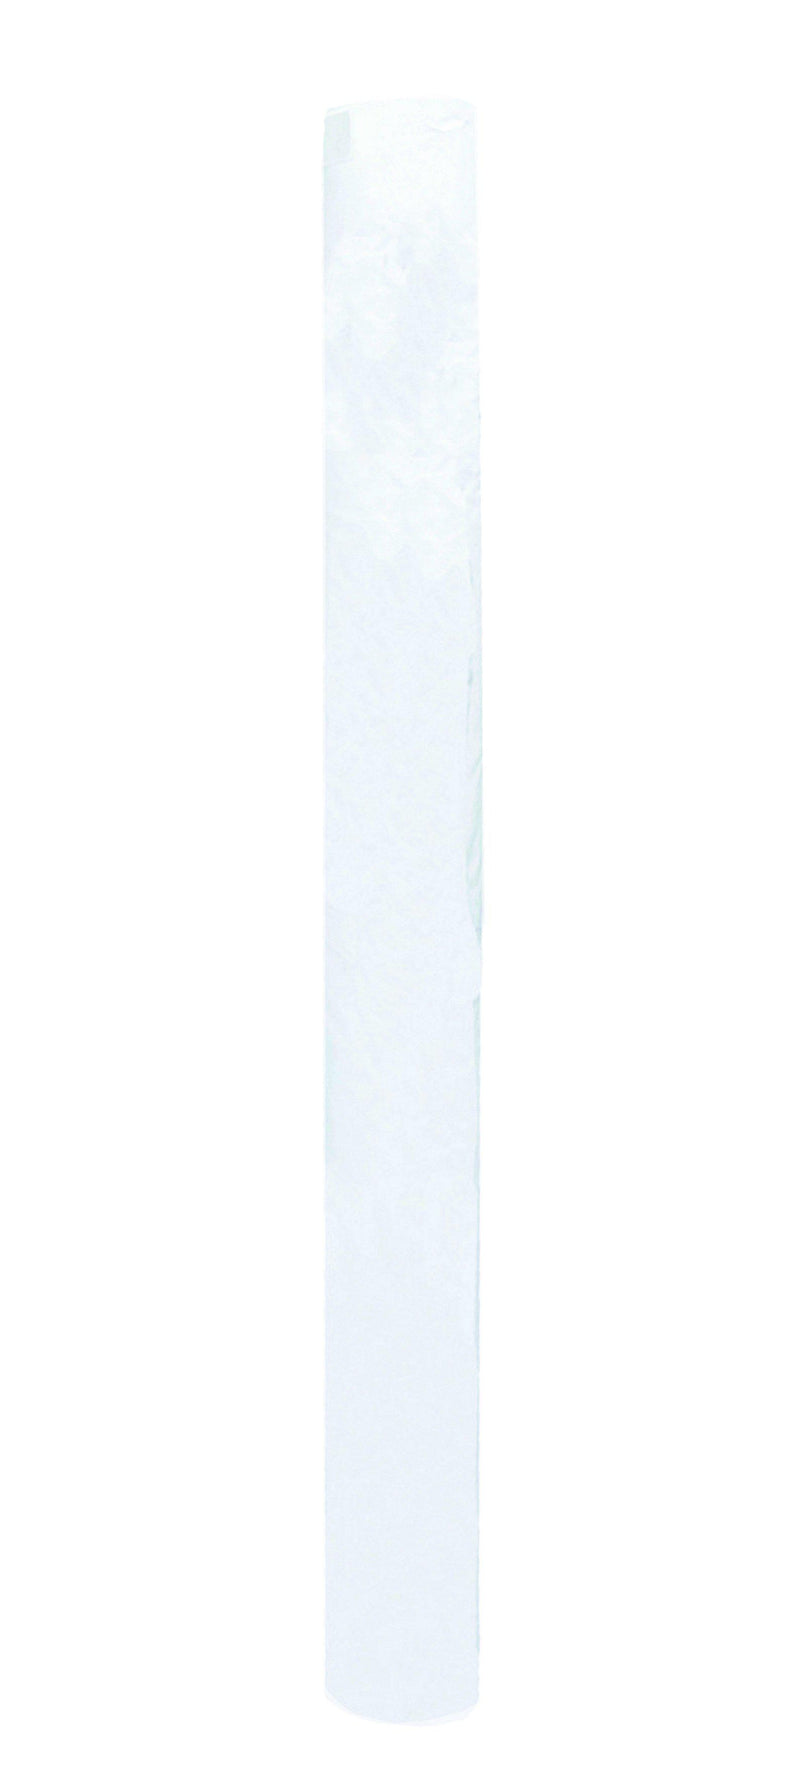 Netball Cylindrical Goal Post Guard-White-MO REPS® Fitness Store